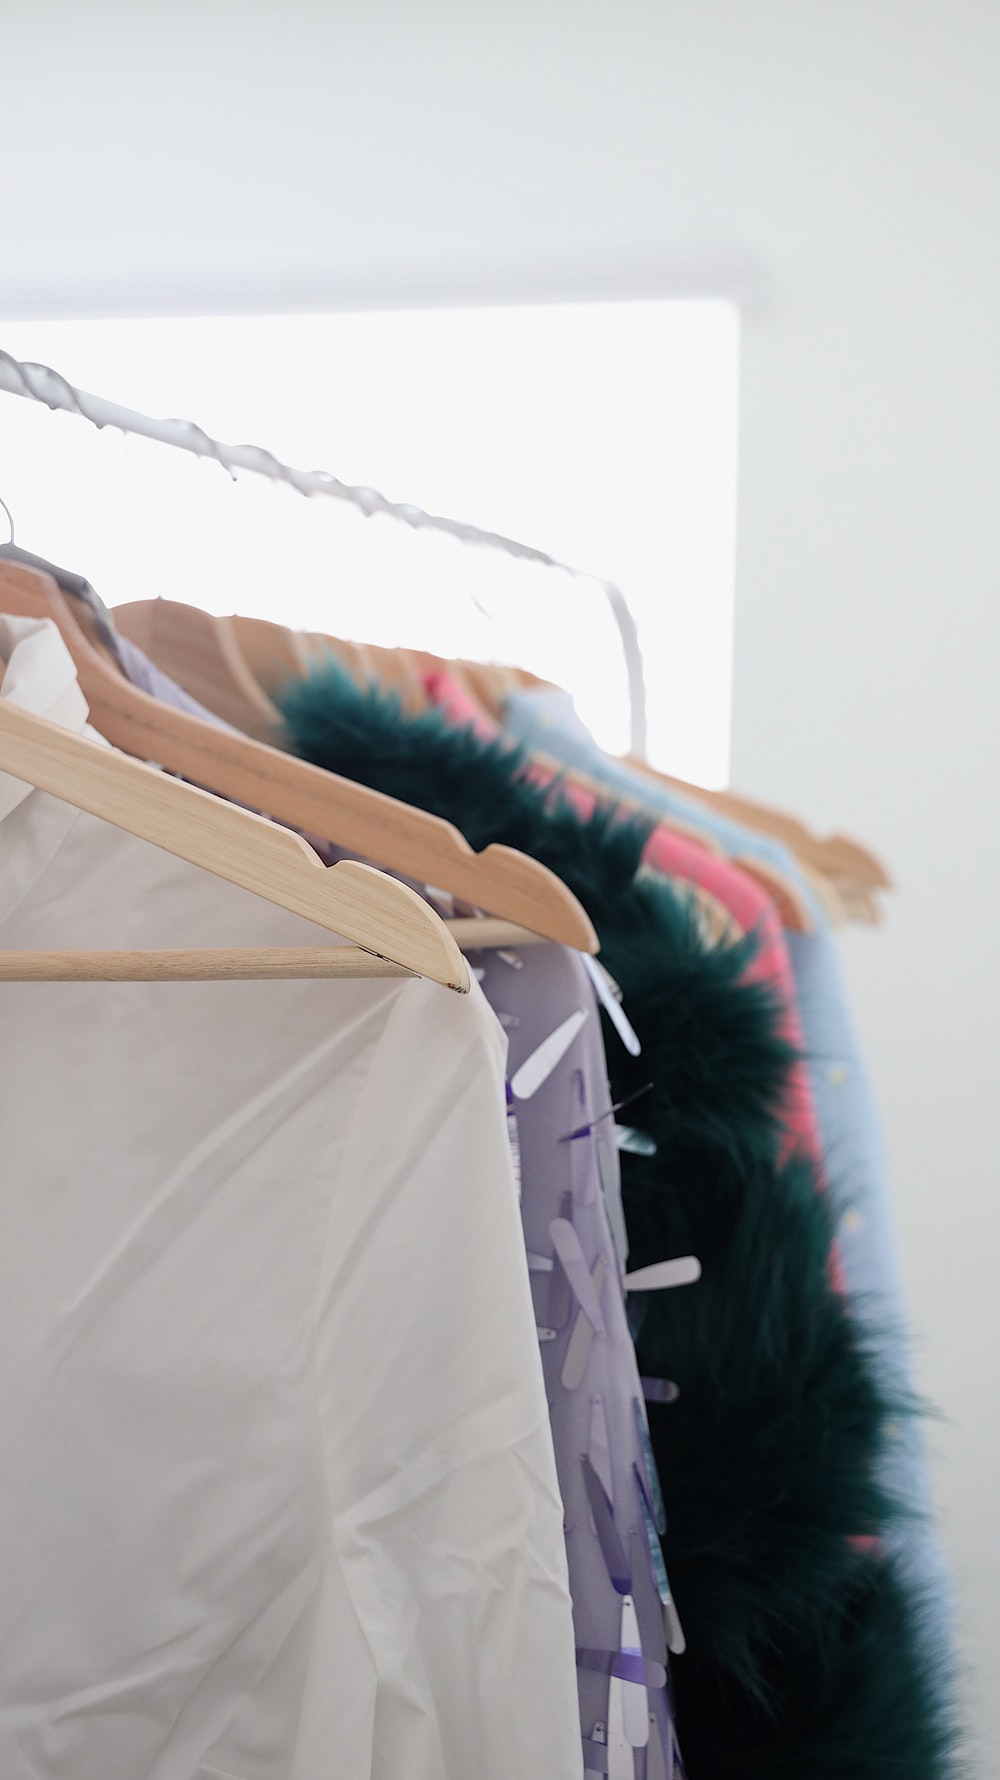 assorted garments hanging on rack